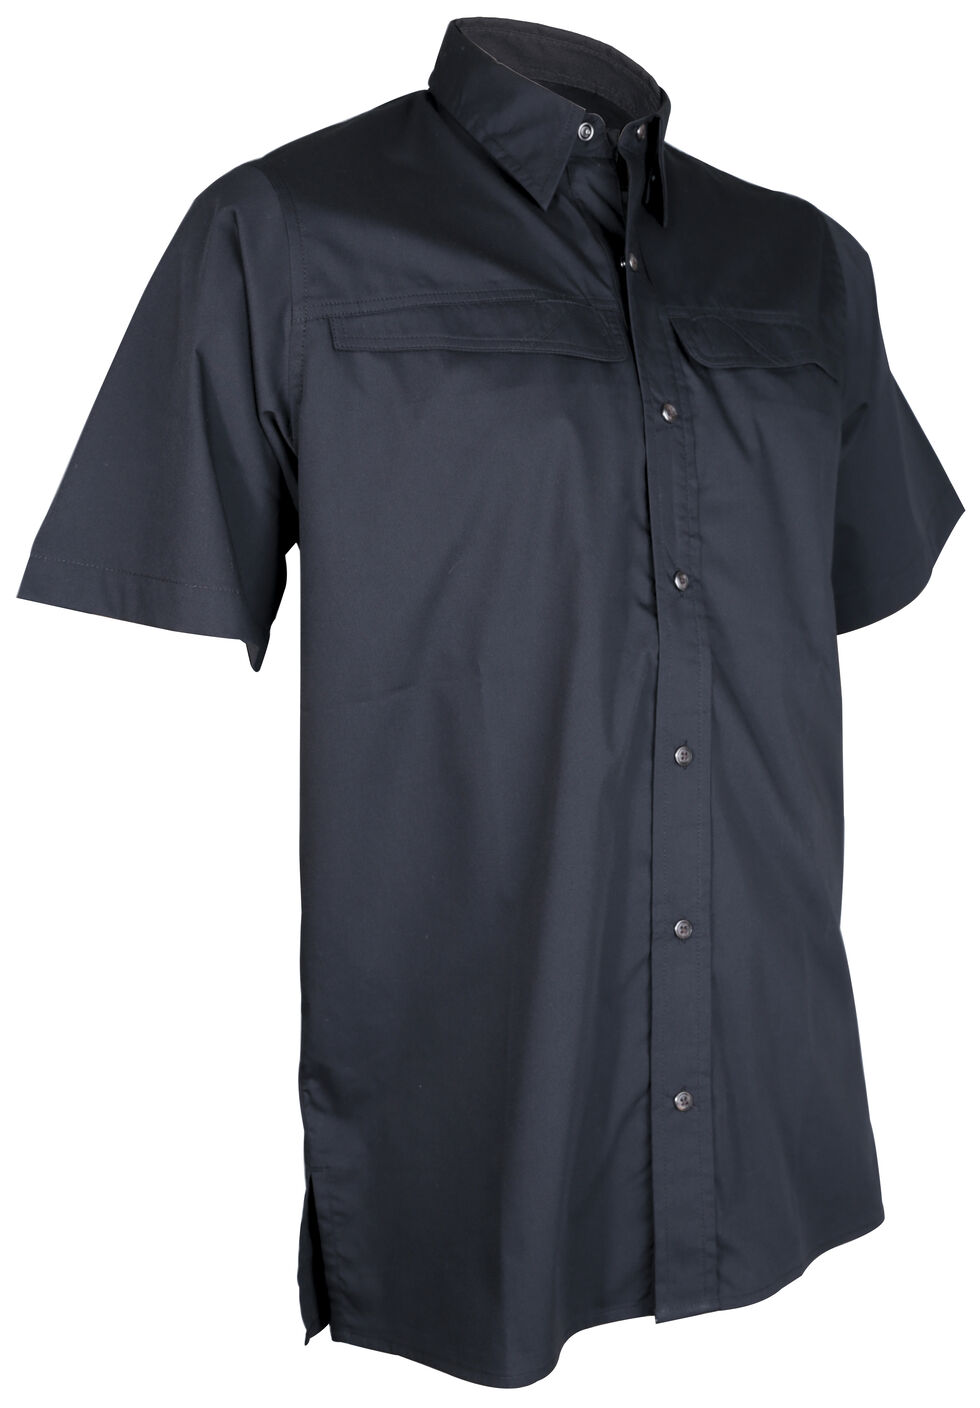 Tru-Spec Men's Black Pinnacle Short Sleeve Shirt , Black, hi-res